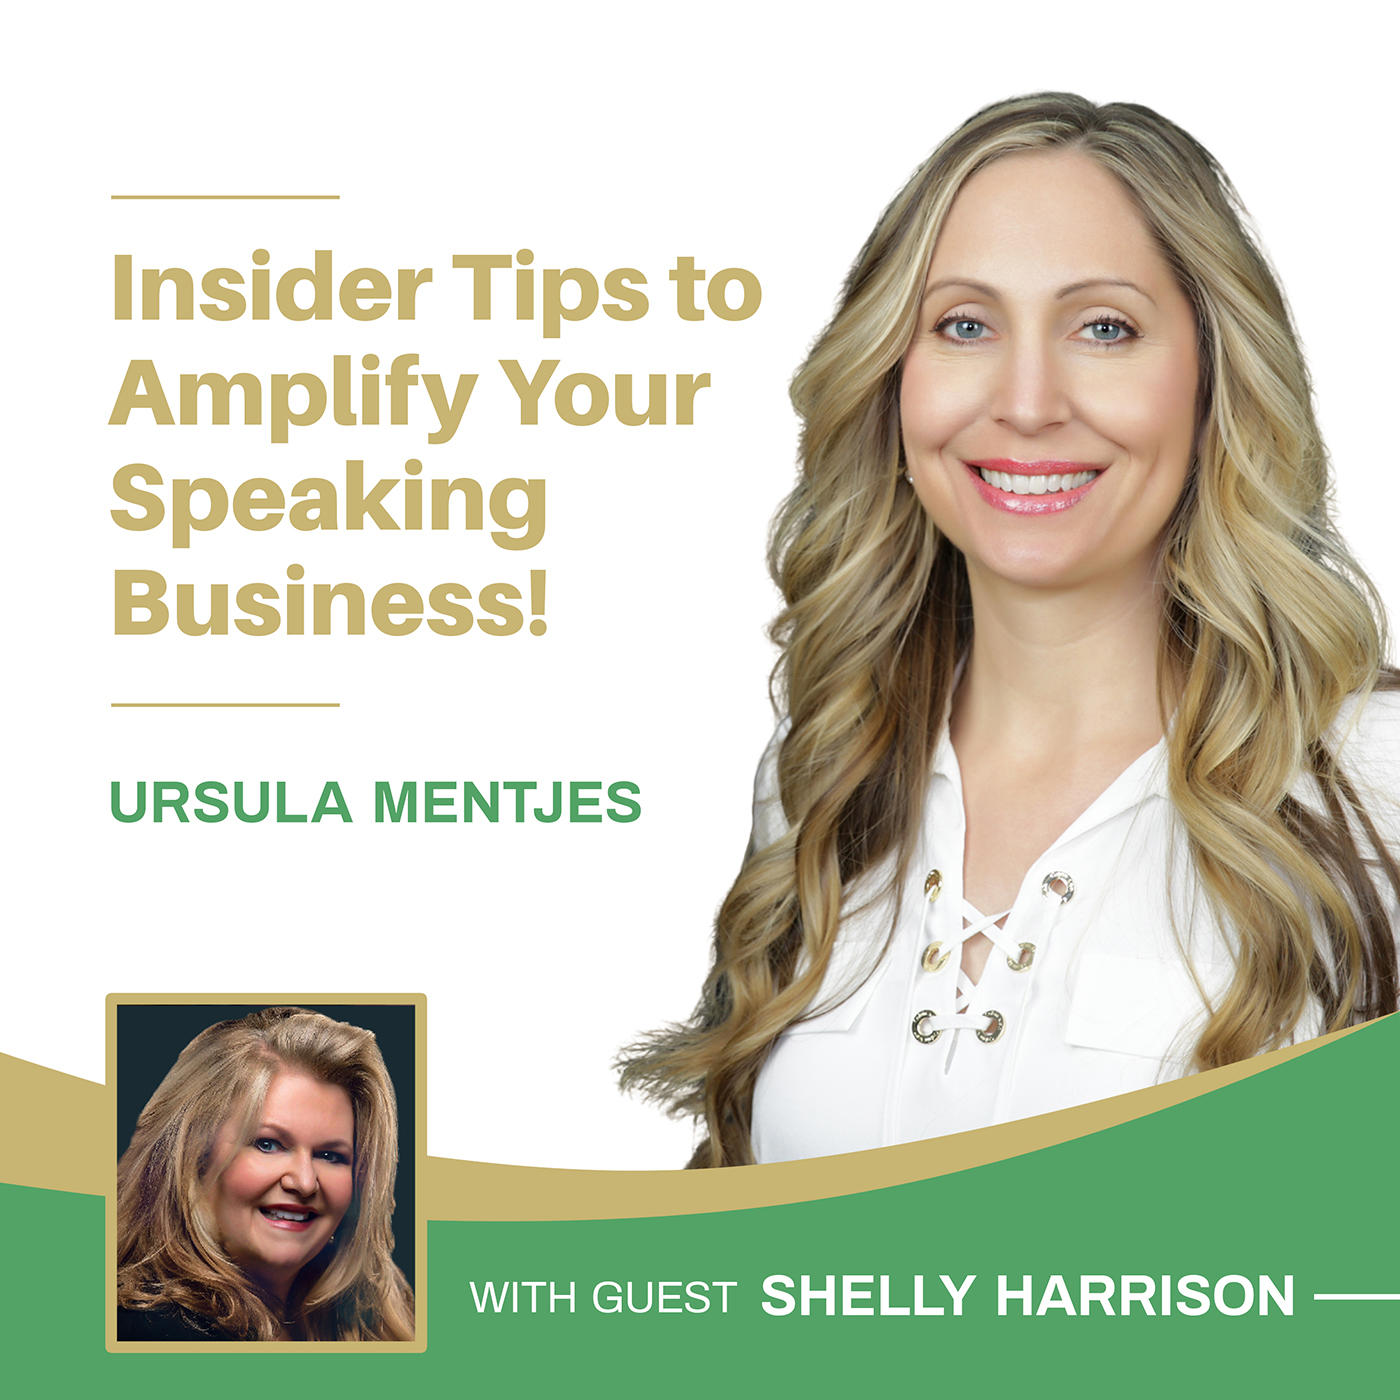 EP149: Insider Tips to Amplify Your Speaking Business with Shelly Harrison